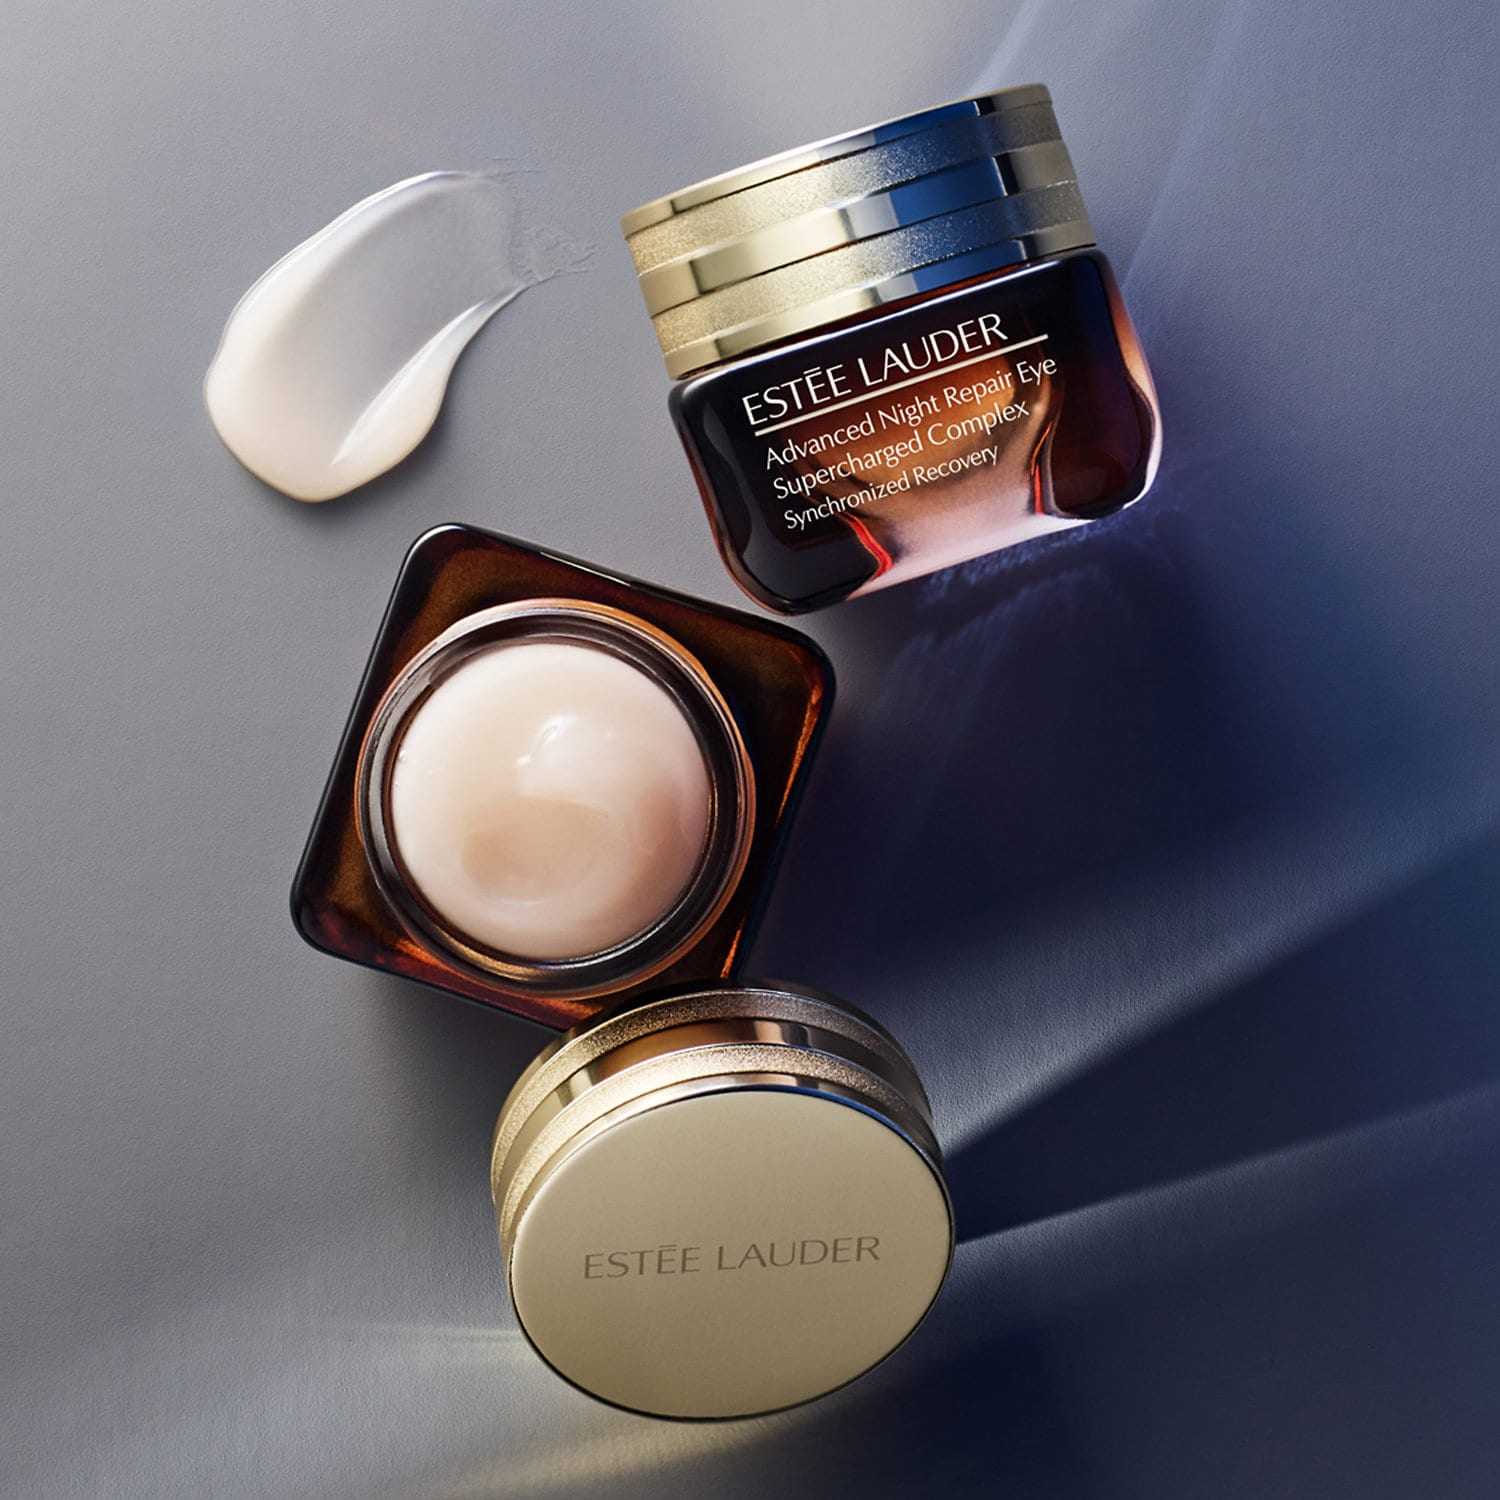 Estee Lauder Advanced night repair Supercharged complex